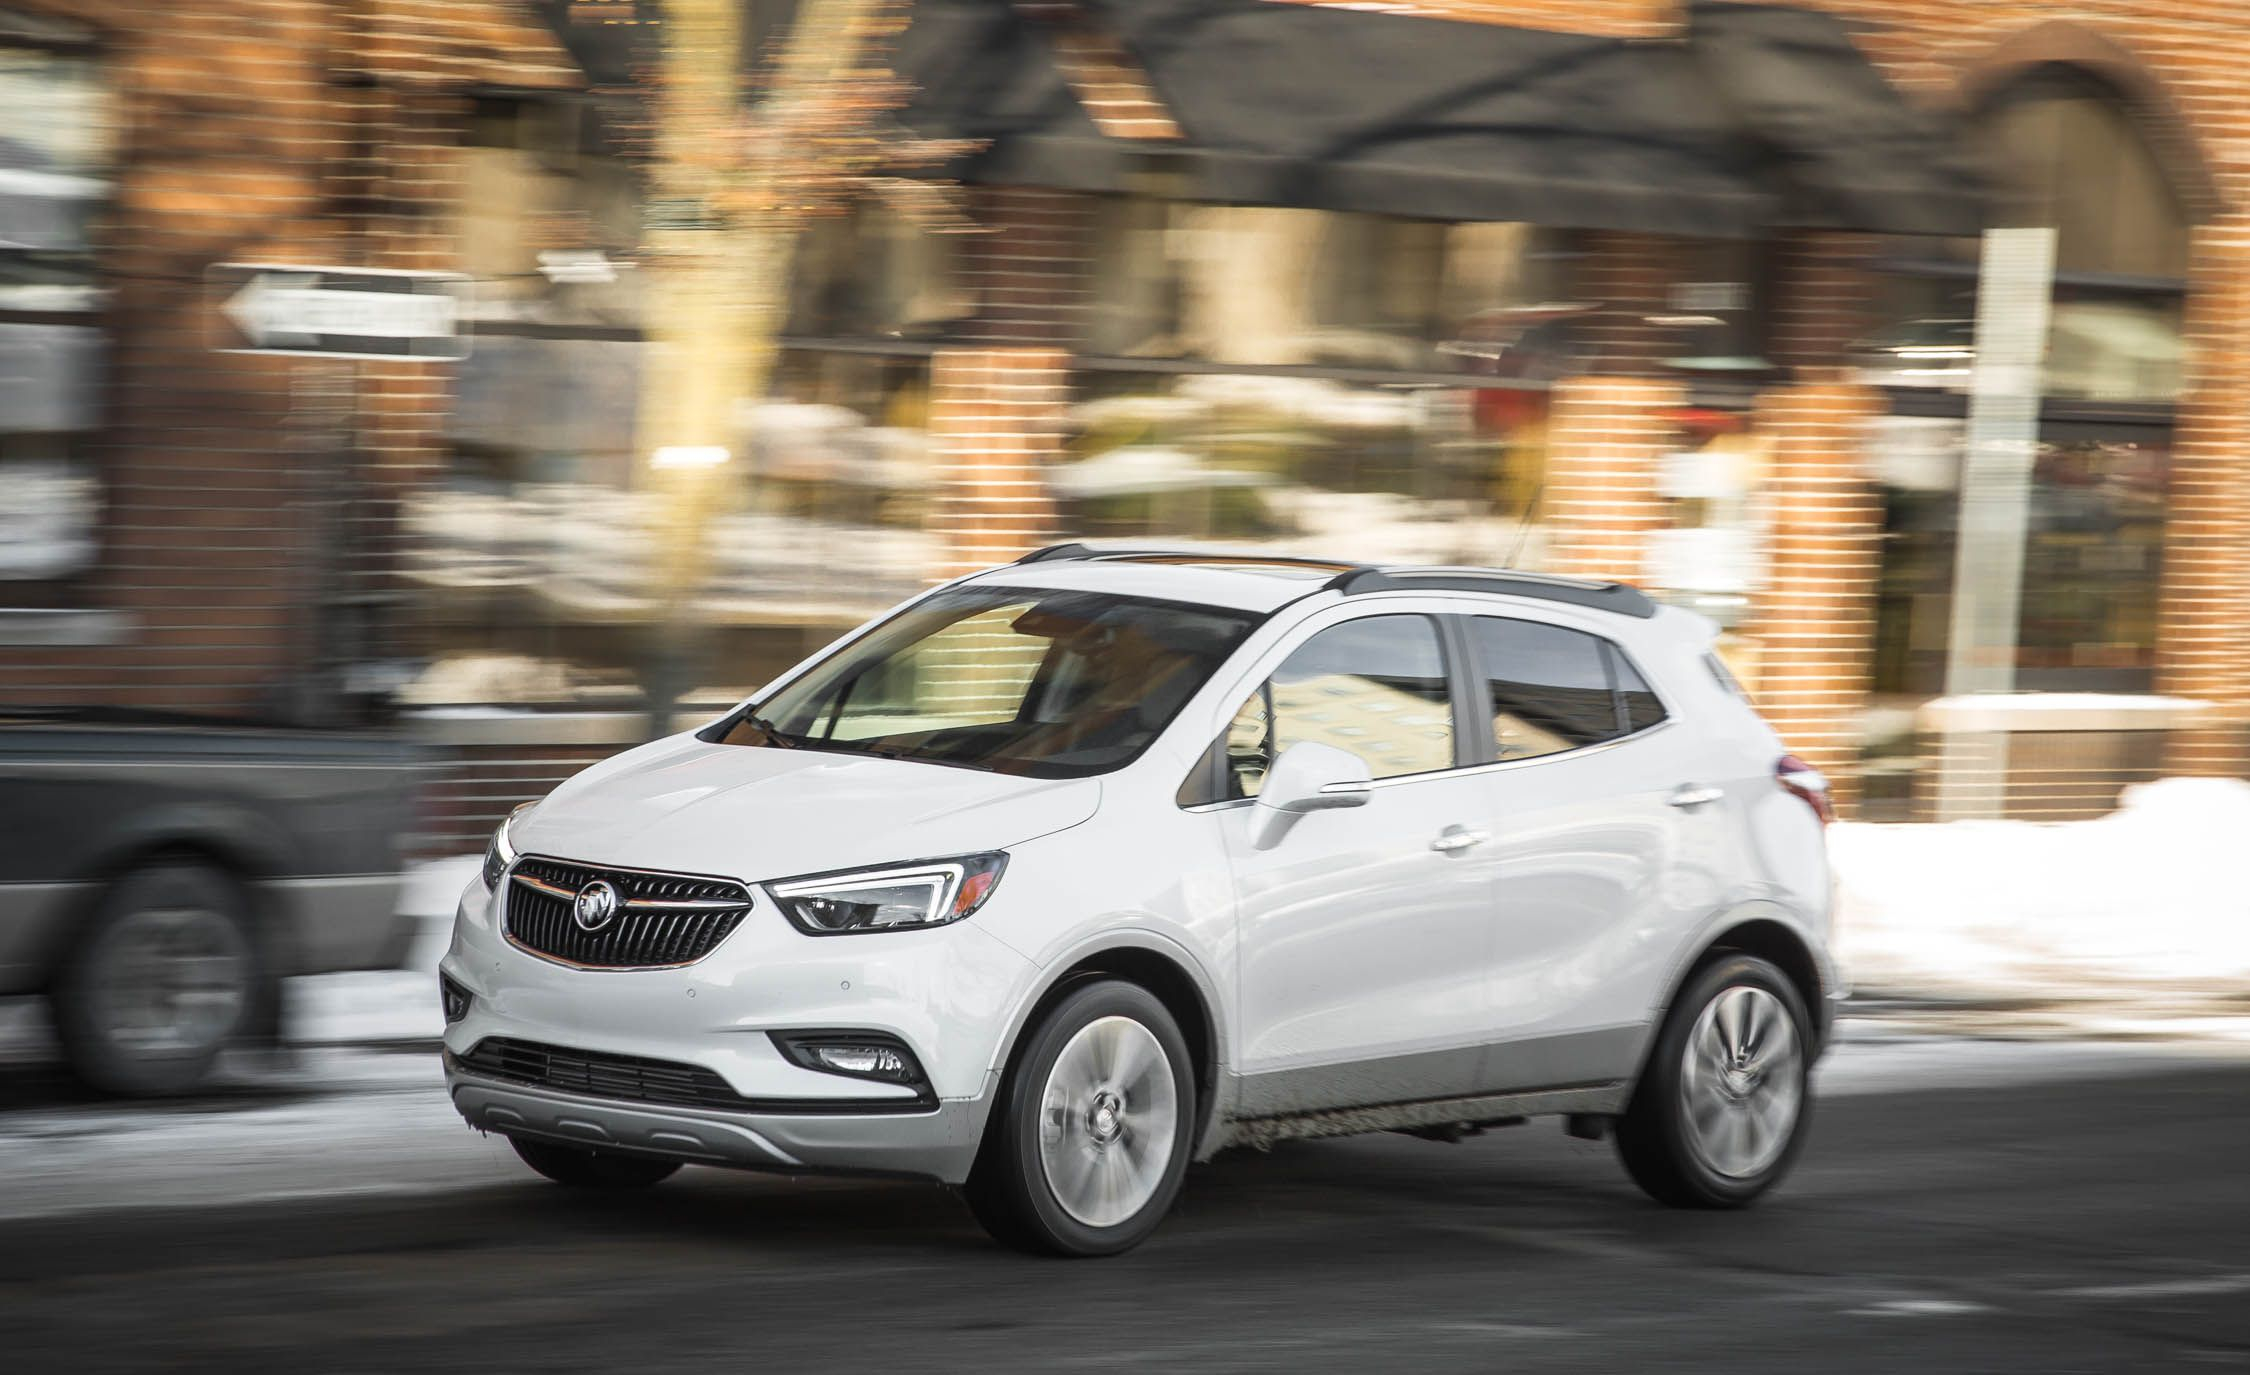 2019 Buick Encore Review, Pricing, And Specs 2021 Buick Encore Interior Dimensions, Lease, Length